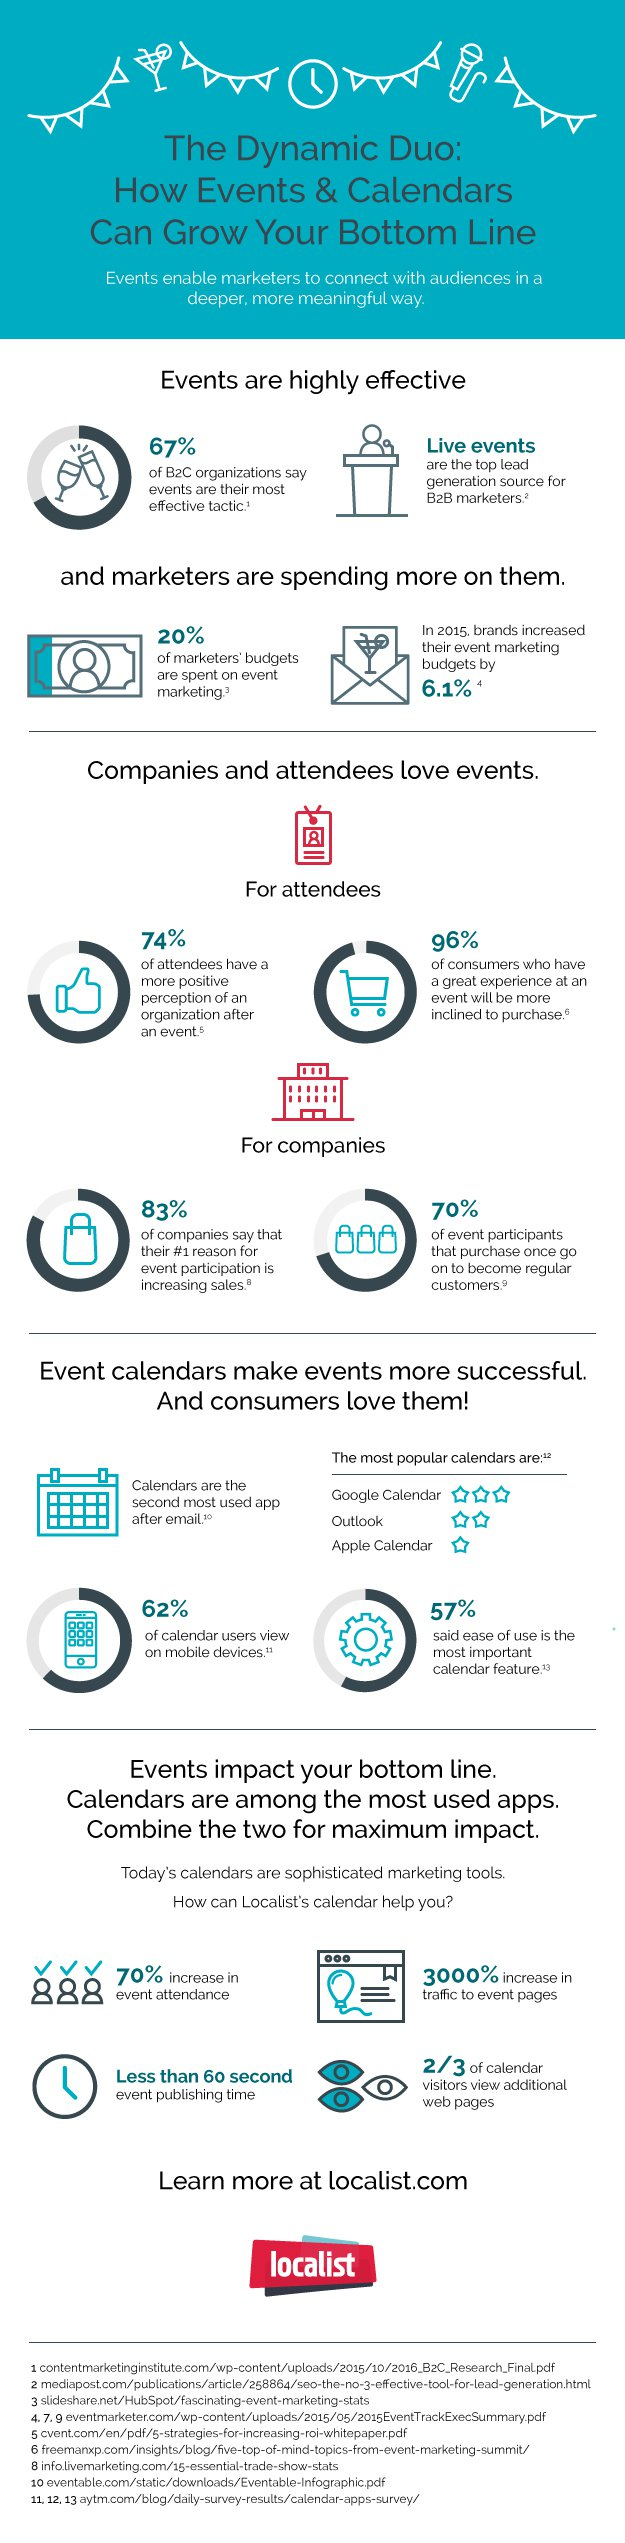 Events & Calendars: The Dynamic Duo Infographic